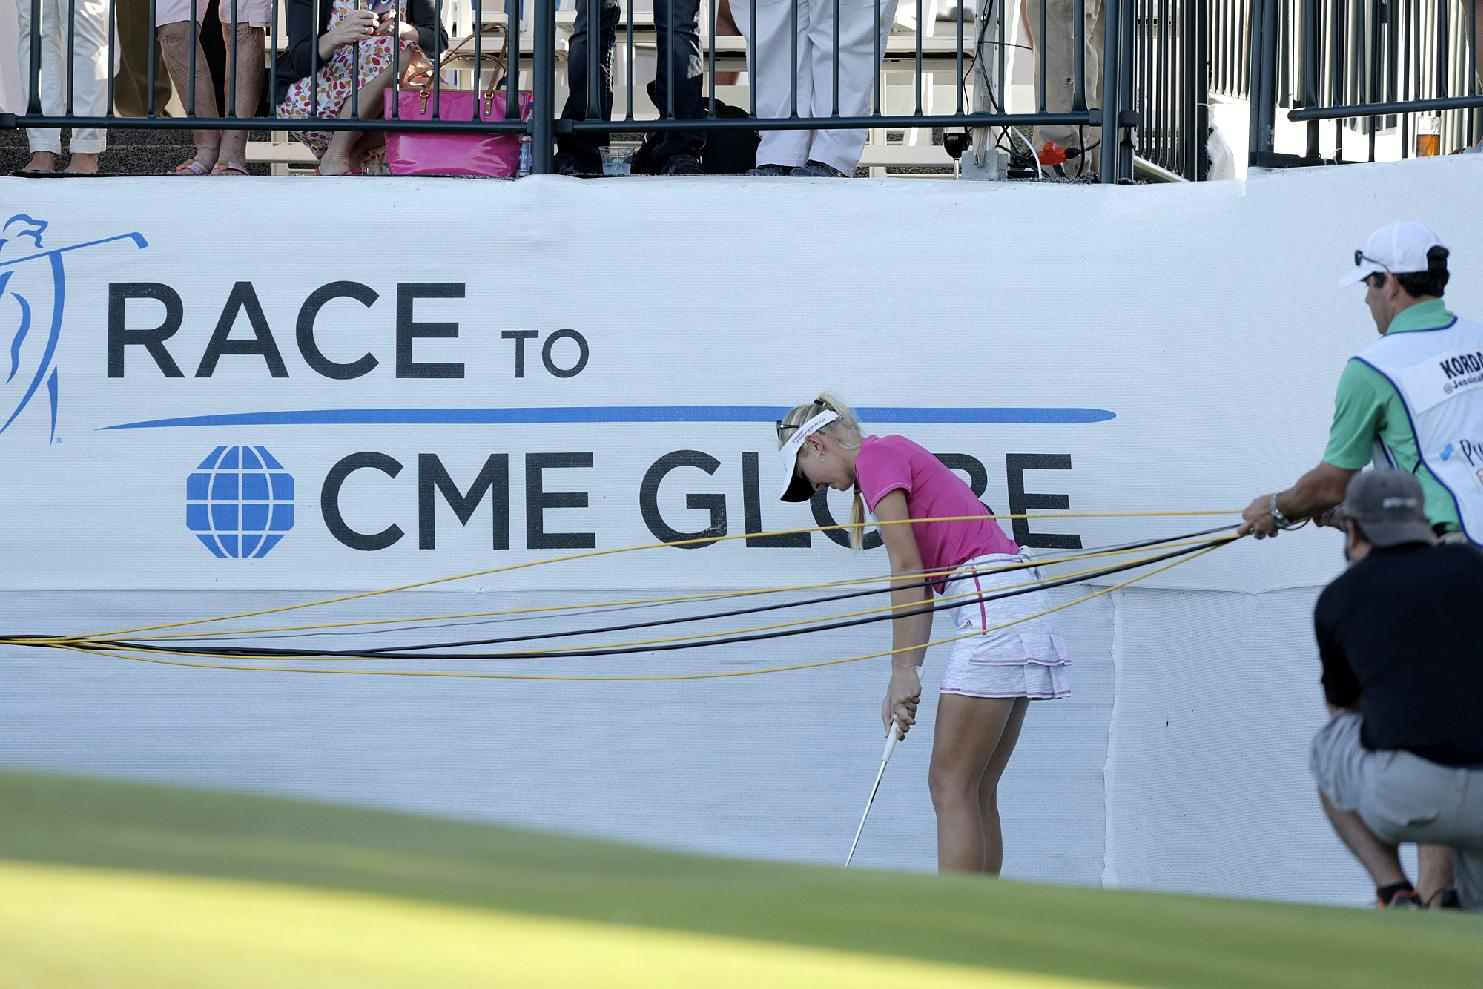 Jessica Korda of the U.S. has to chip over some wires on the 18th during the last day of the LPGA Pure Silk Bahamas Classic at the Ocean Club Golf Course, Paradise Island, Bahamas, Sunday, Jan. 26, 2014